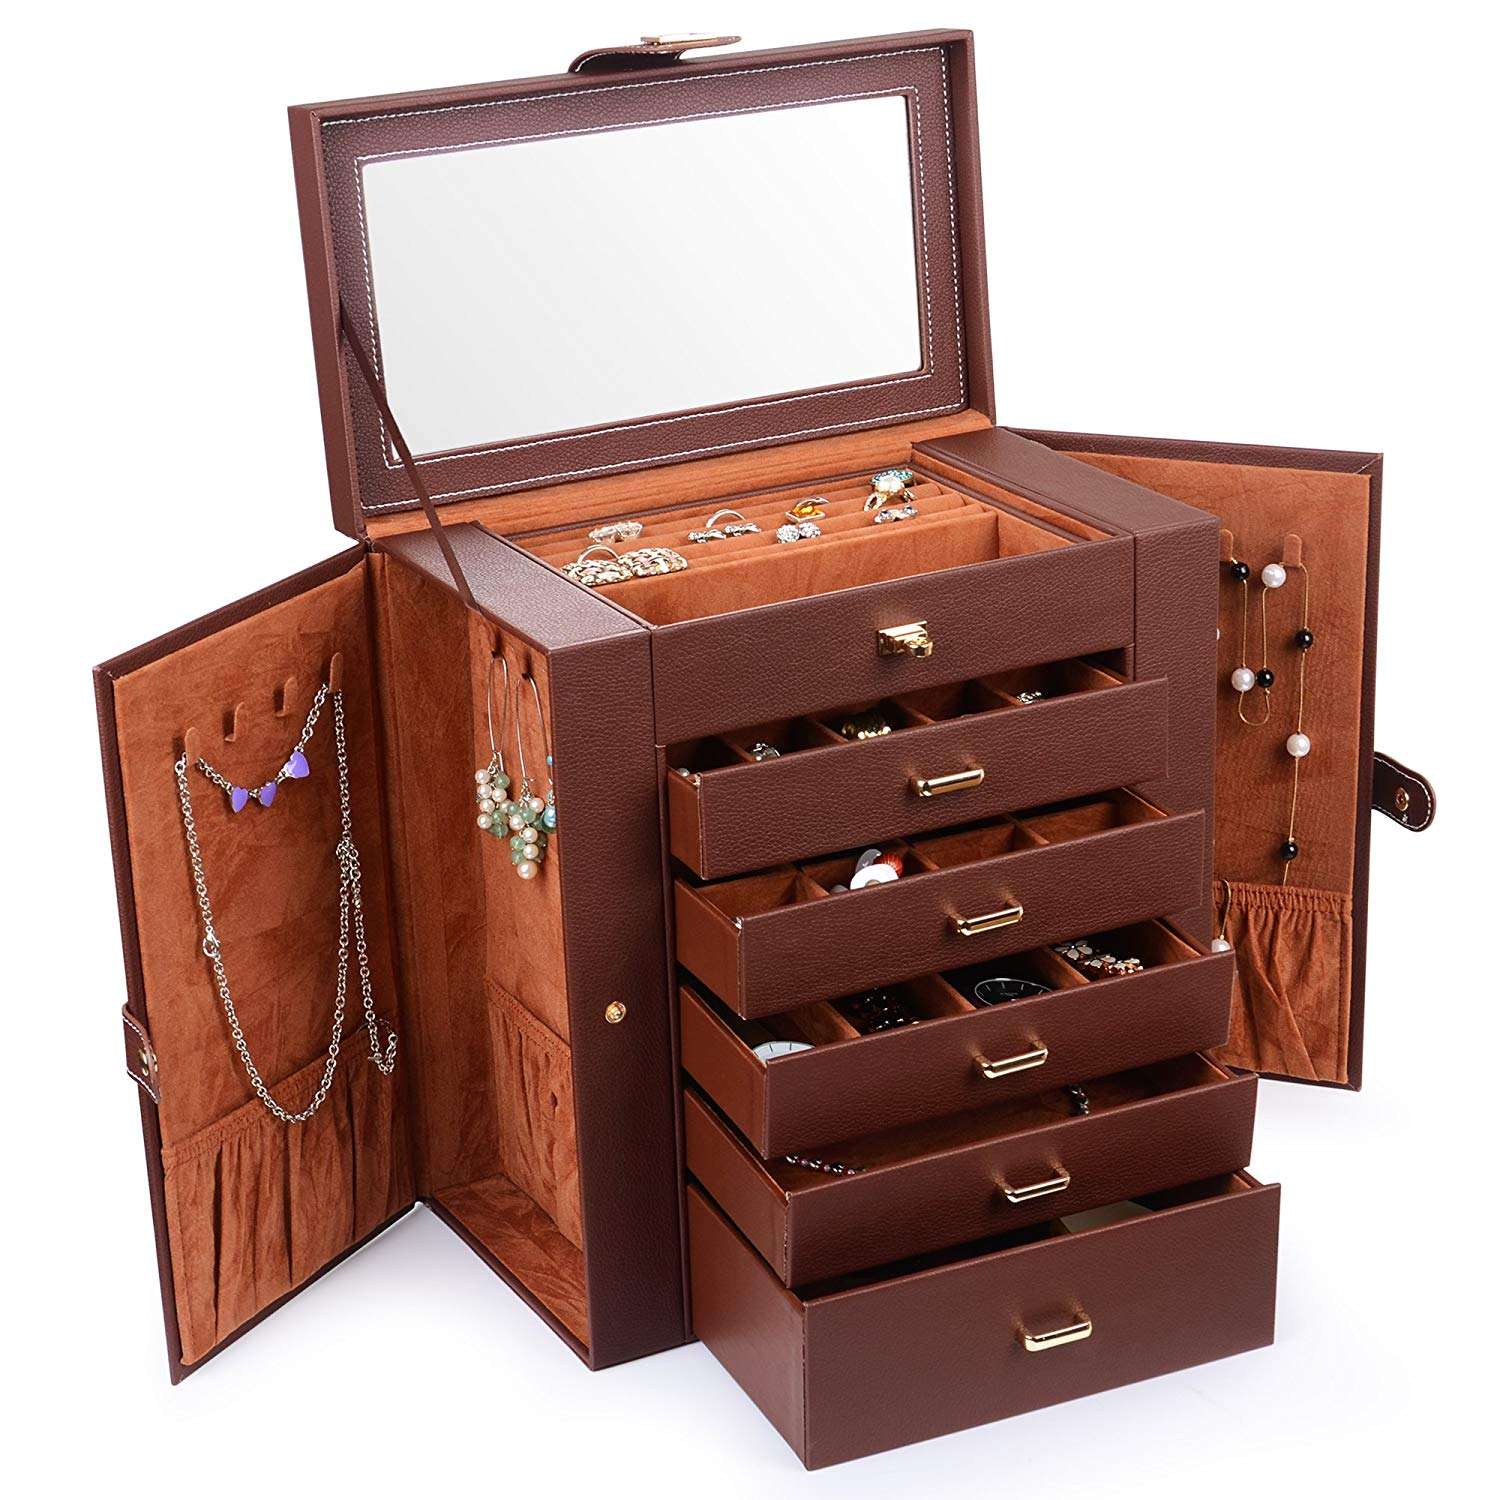 Leather Jewelry Box - 45th wedding anniversary